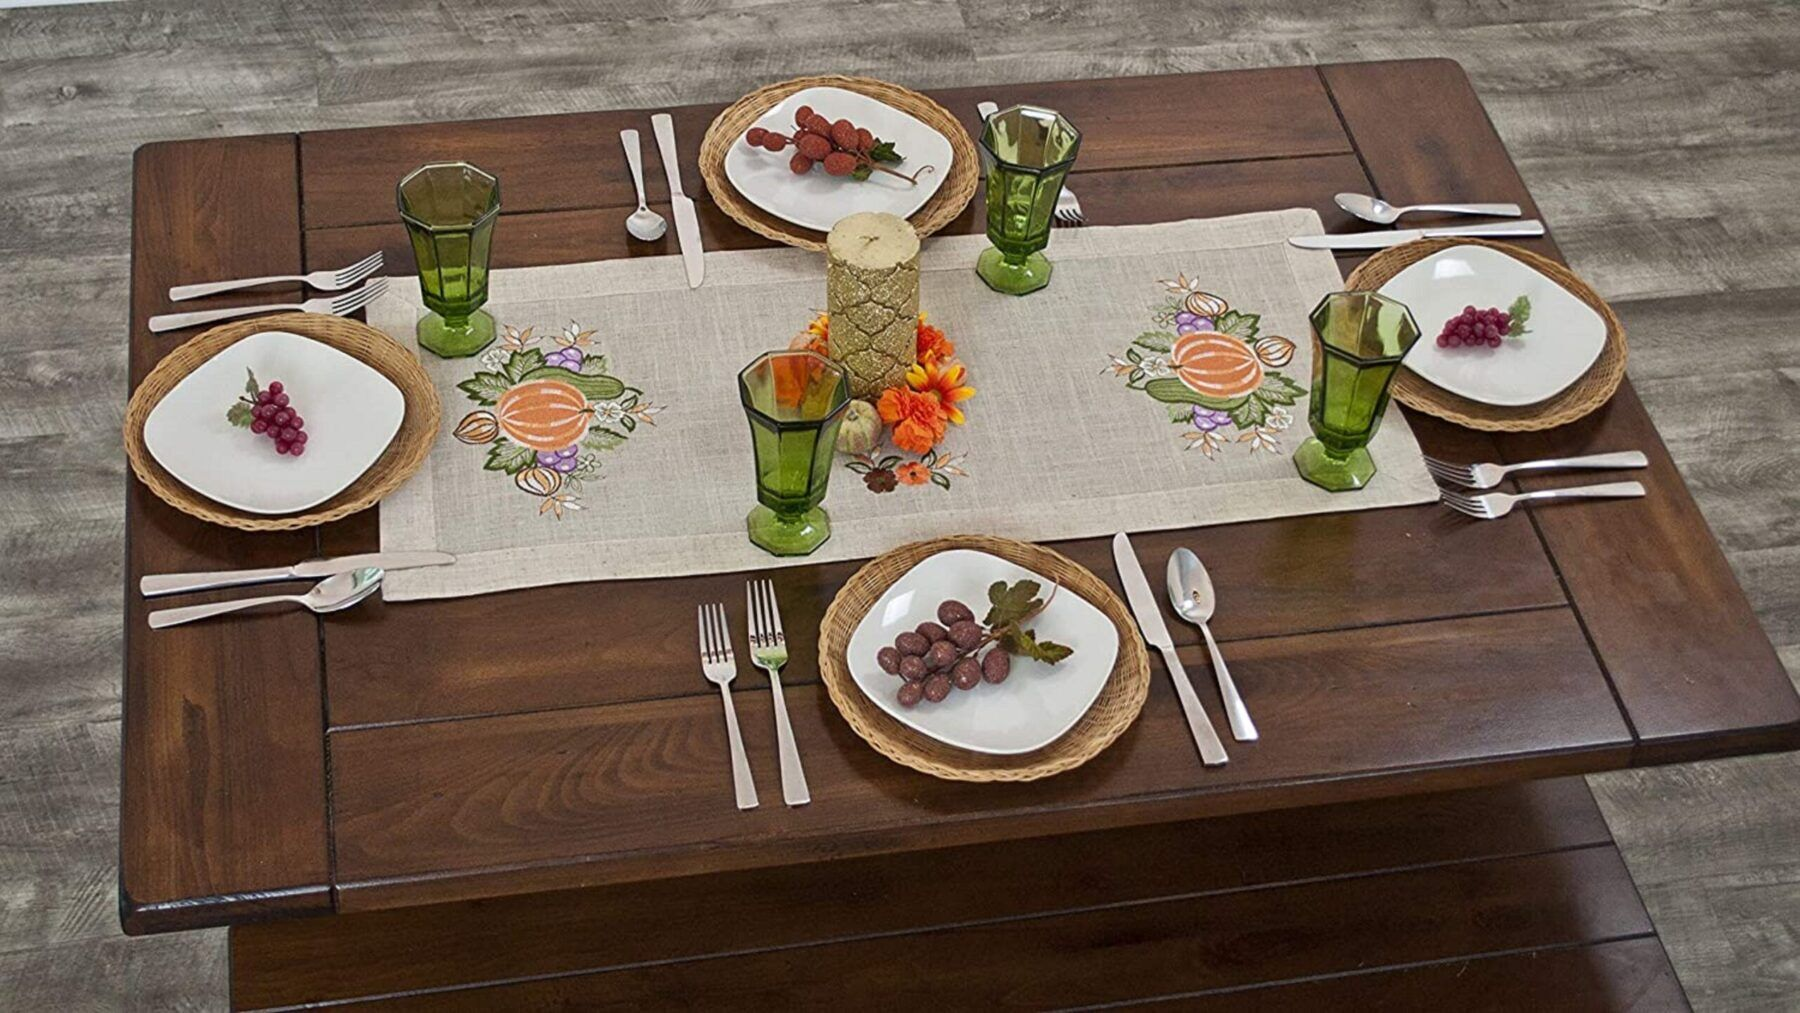 fall embroidery pumpkin and grapes table runner – 13″ x 26.5″